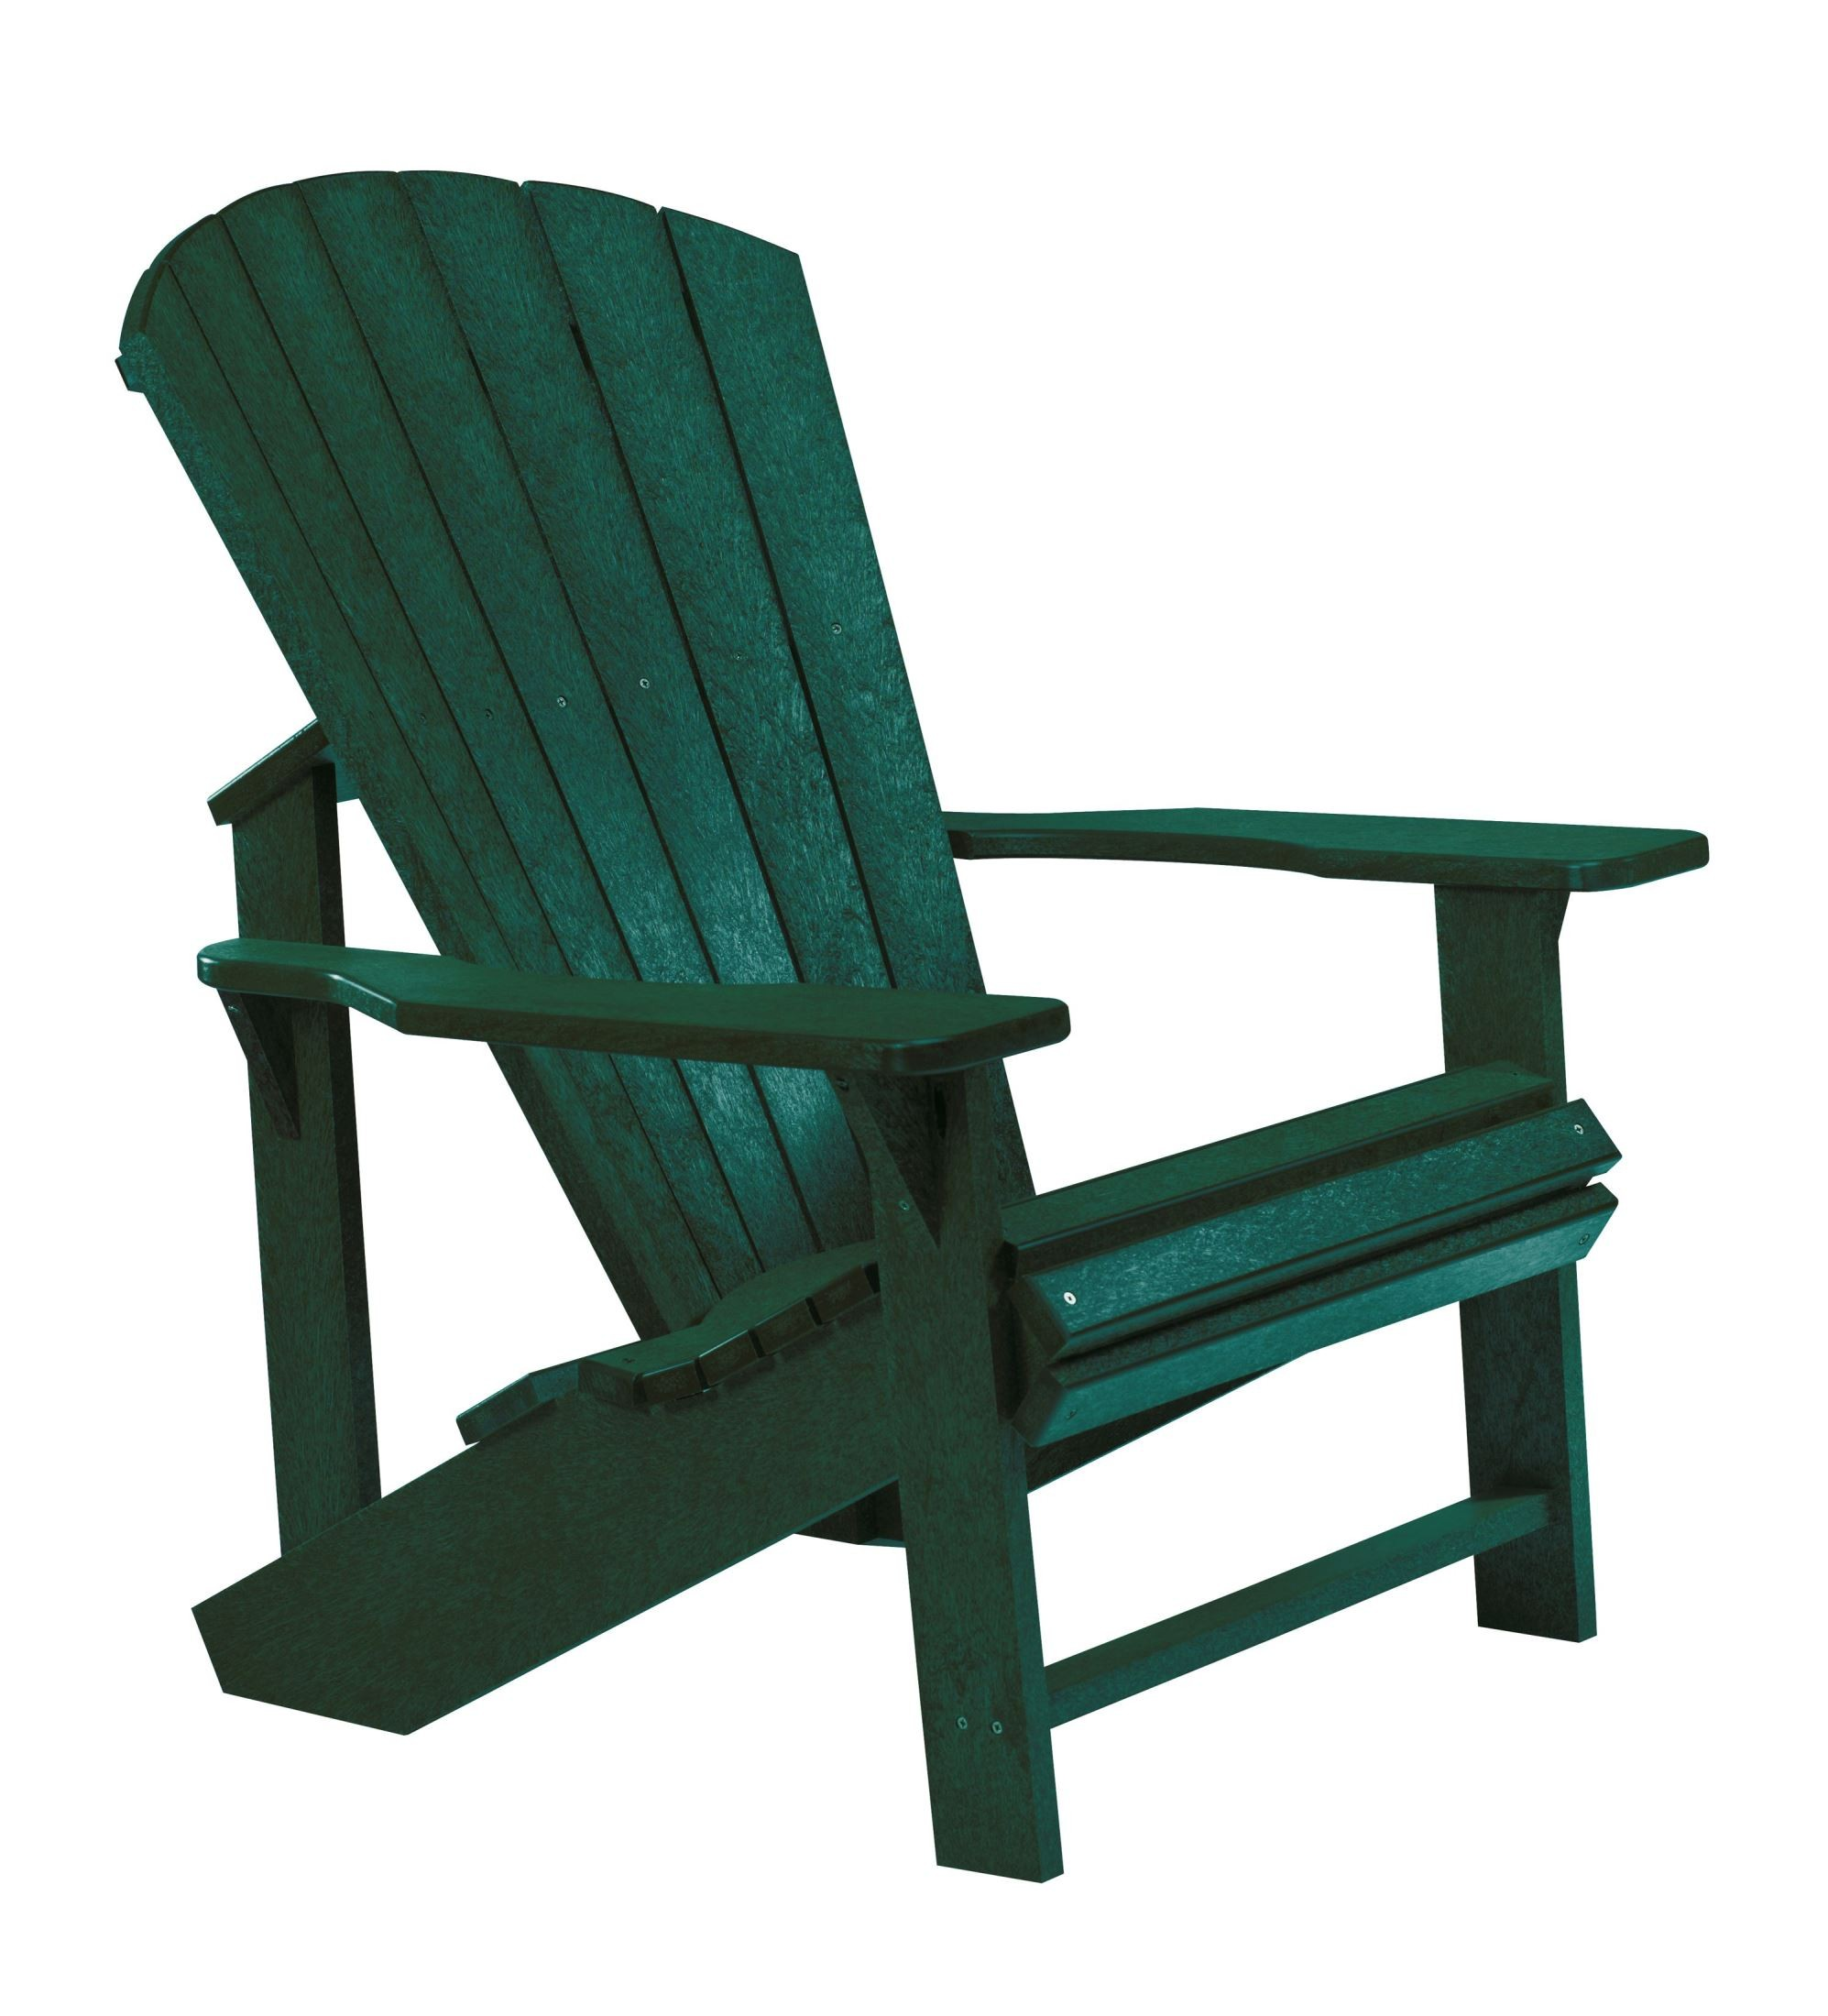 Generations green adirondack chair from cr plastic c01 06 coleman furniture - Green resin adirondack chairs ...